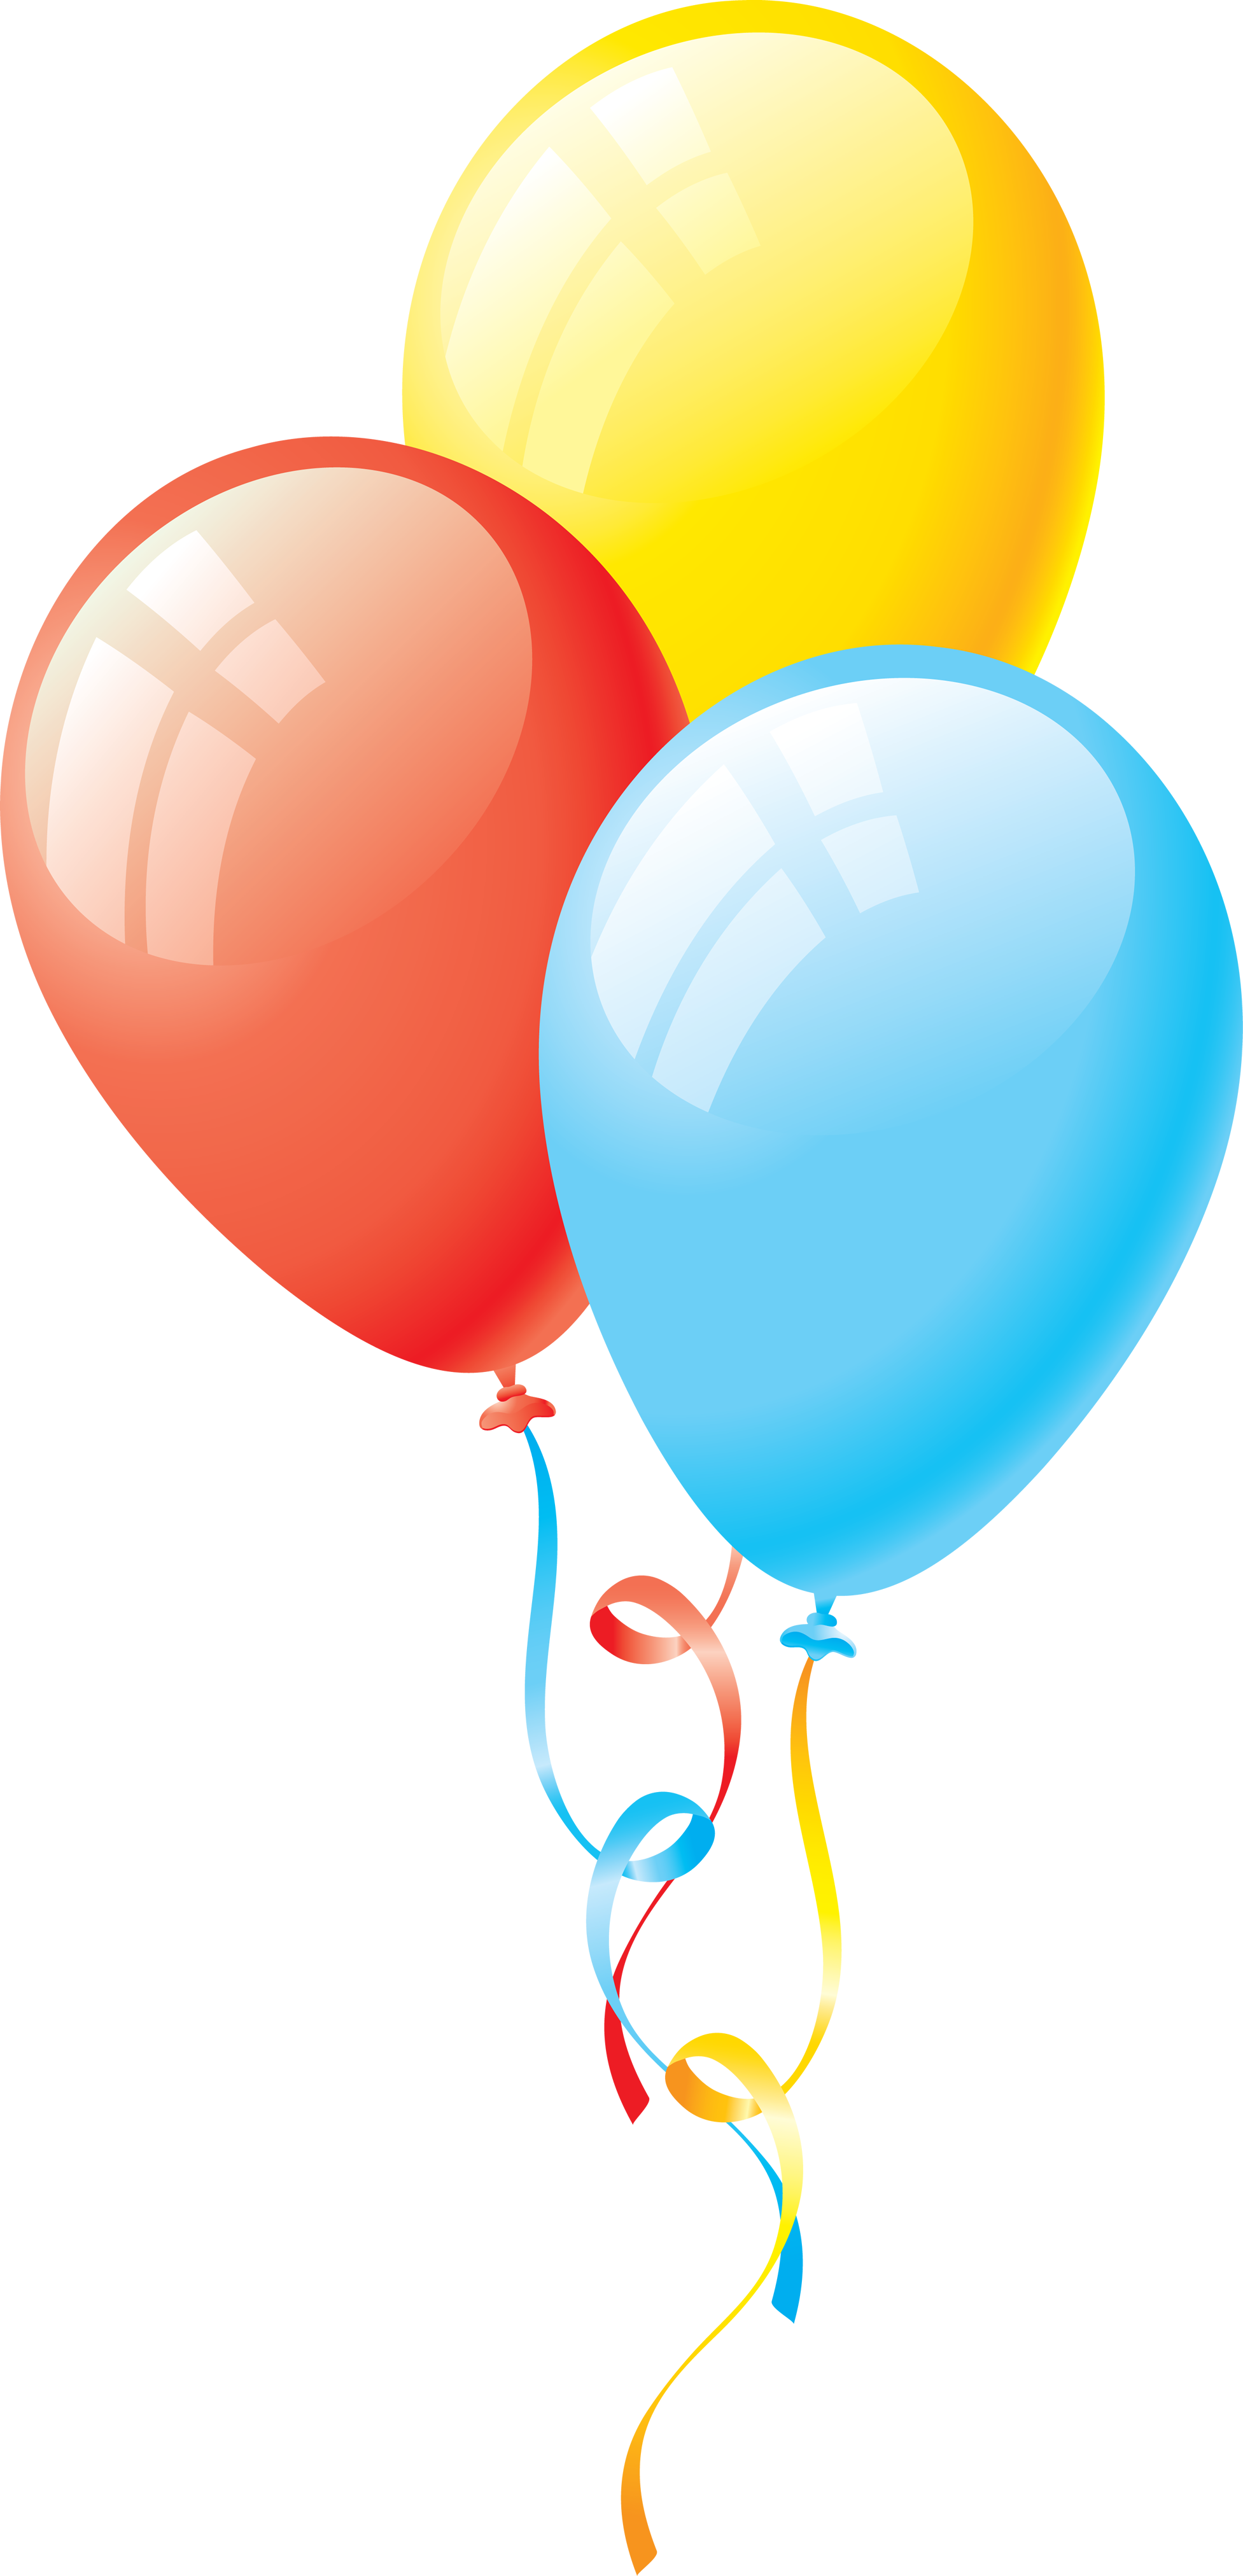 Download Balloons Png 5 HQ PNG Image